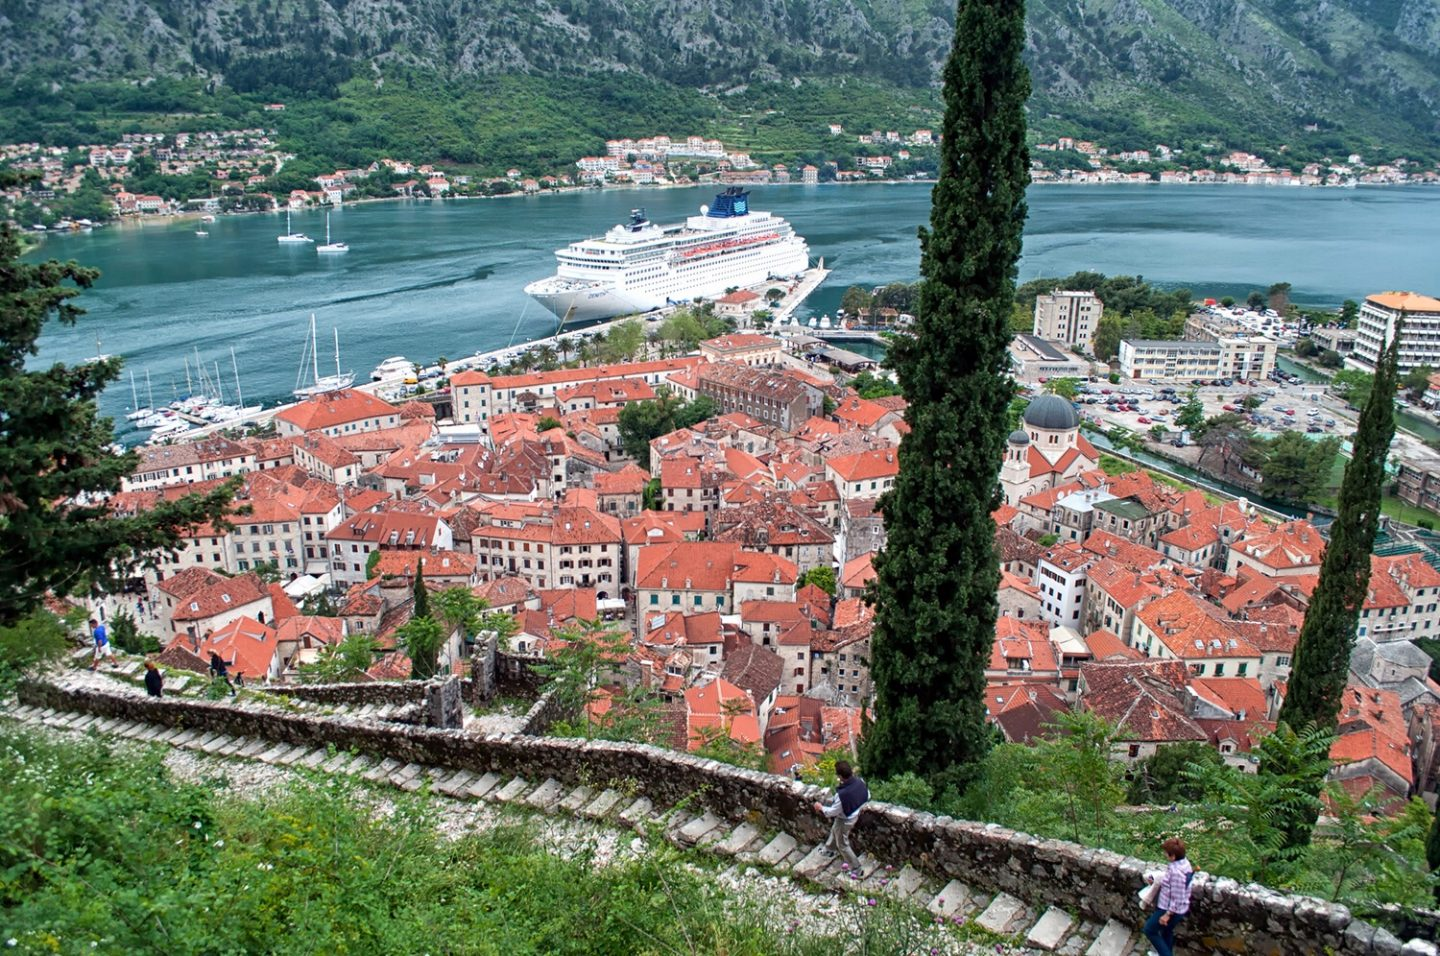 The view from Kotor's city walls, copyright On the Luce